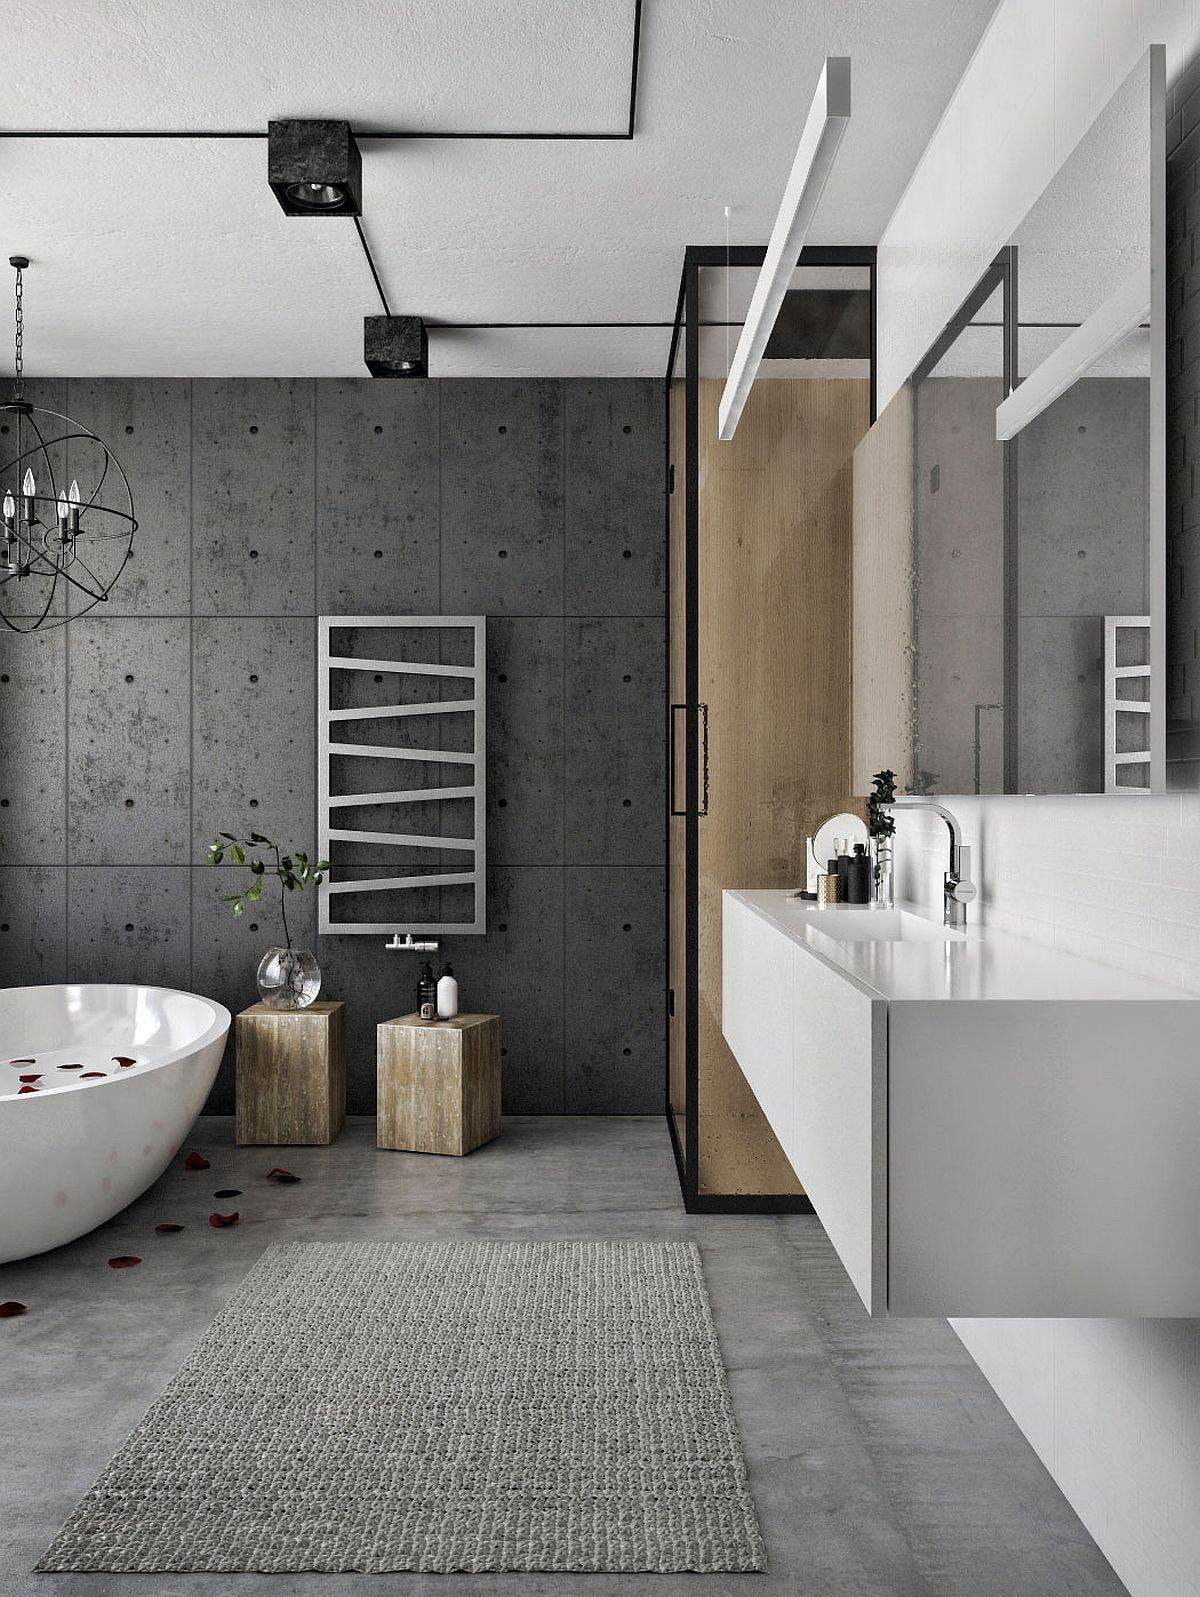 Combination of Modern Industrial Style